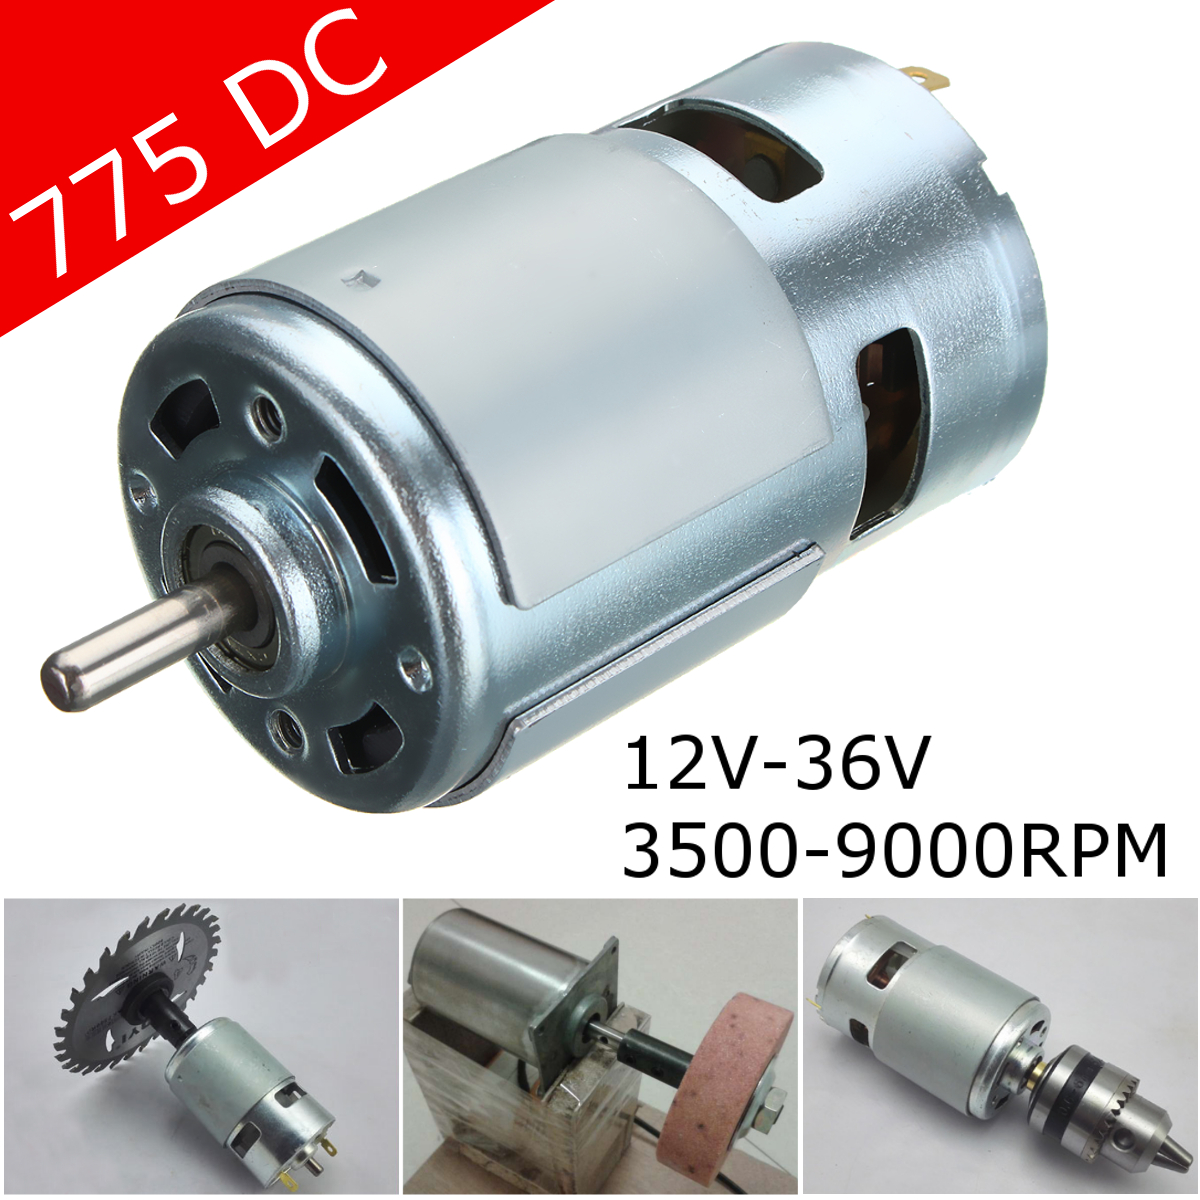 High Speed Motor 775 DC 12V~36V 3500-9000RPM Ball Bearing Large Torque High Power Low Noise Electronic Equipments цена